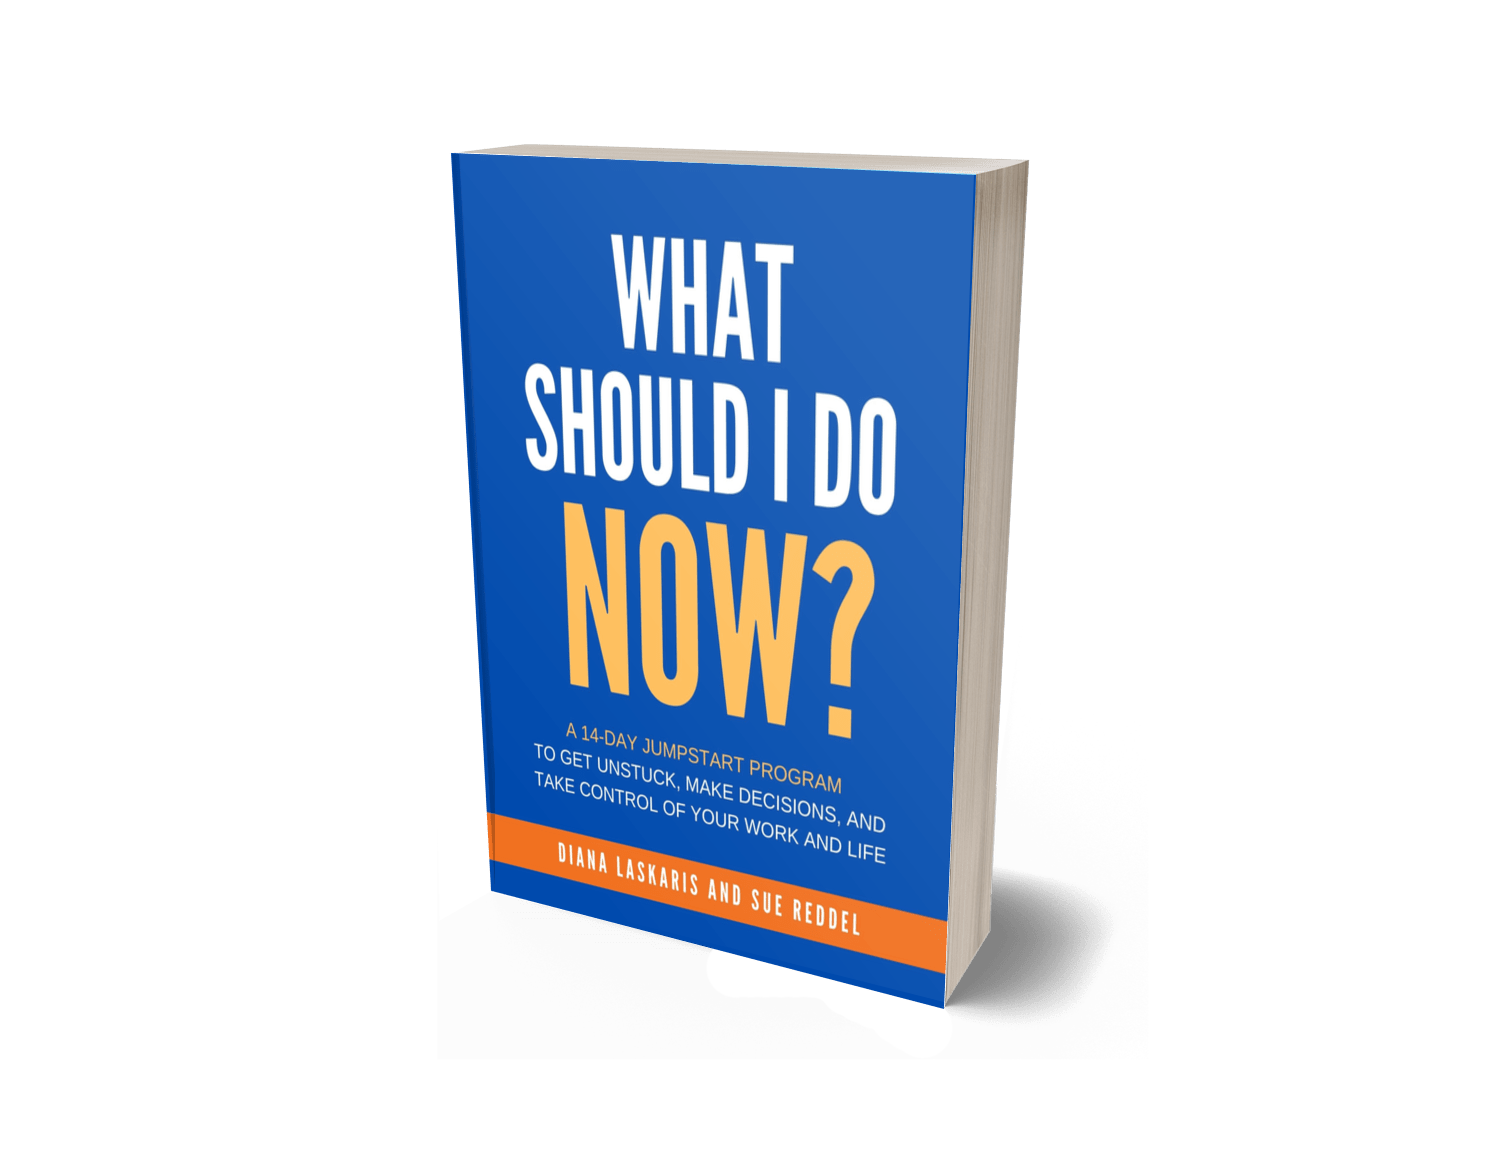 WHAT SHOULD I DO NOW BOOK